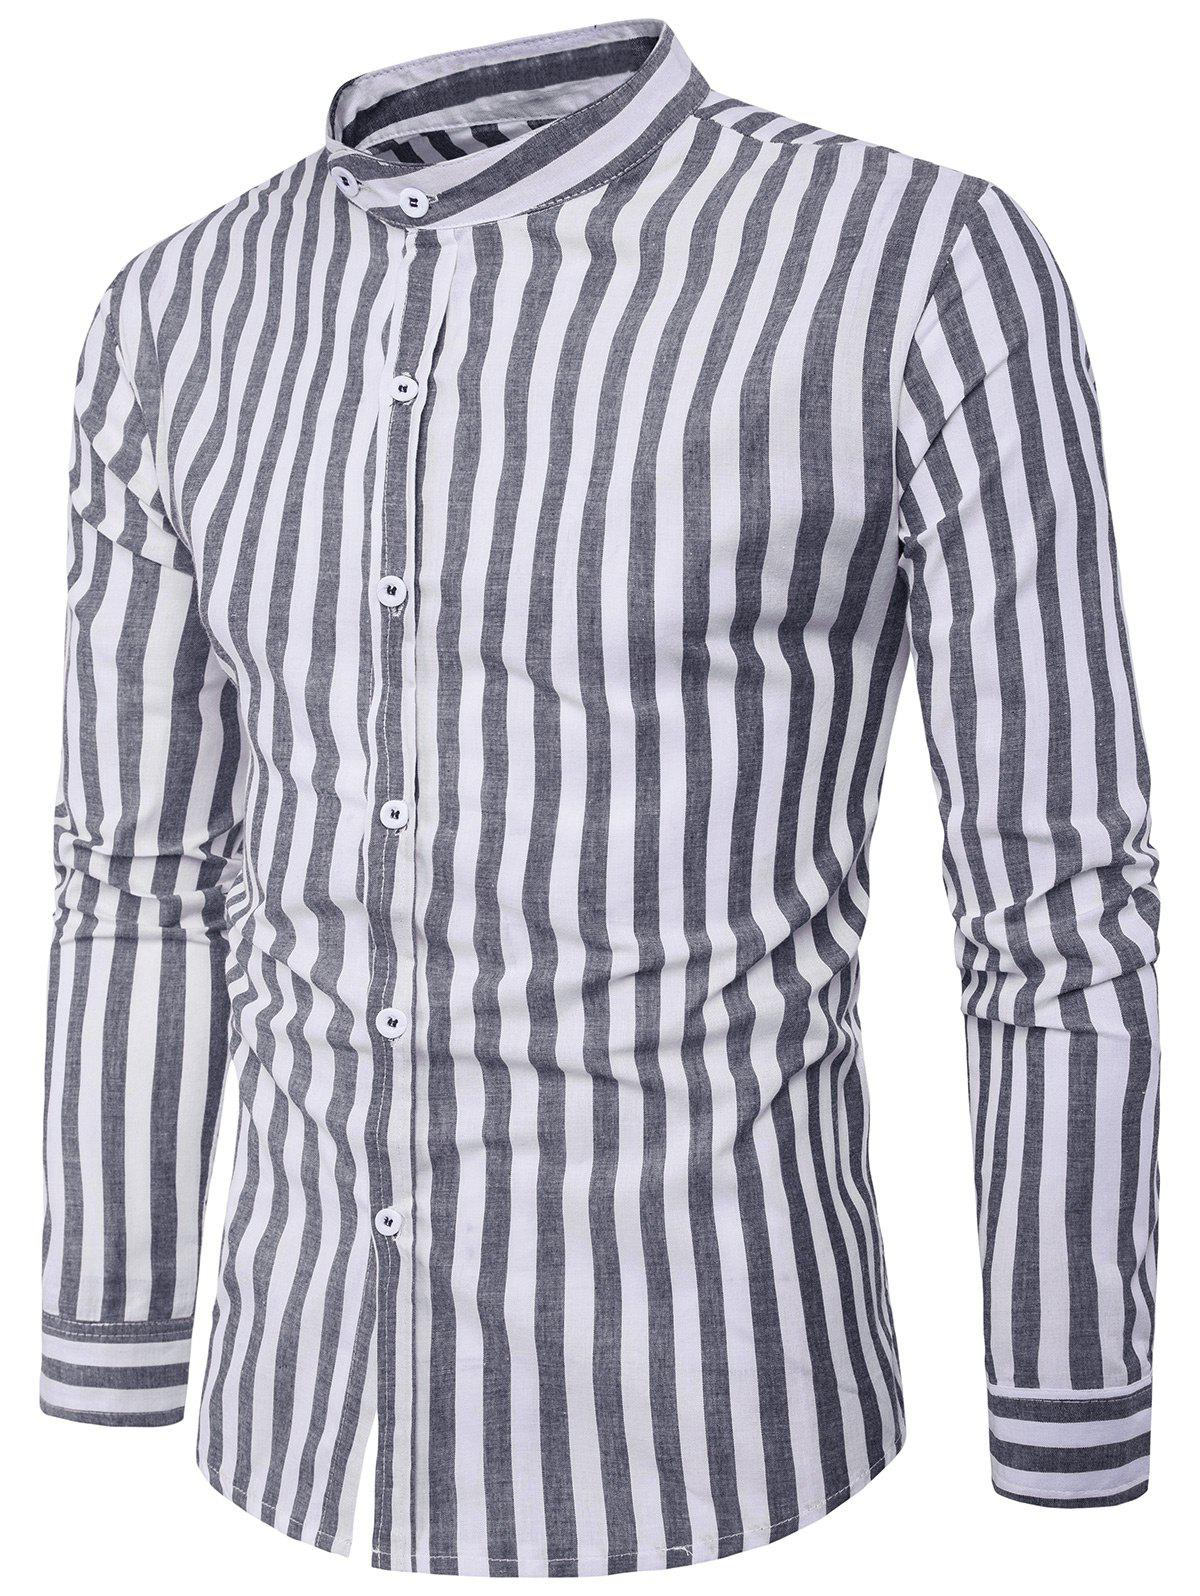 Vintage Vertical Stripe Long Sleeve Shirt дневные ходовые огни 0 5 2 9 drl 14 16 100% waterproof easy